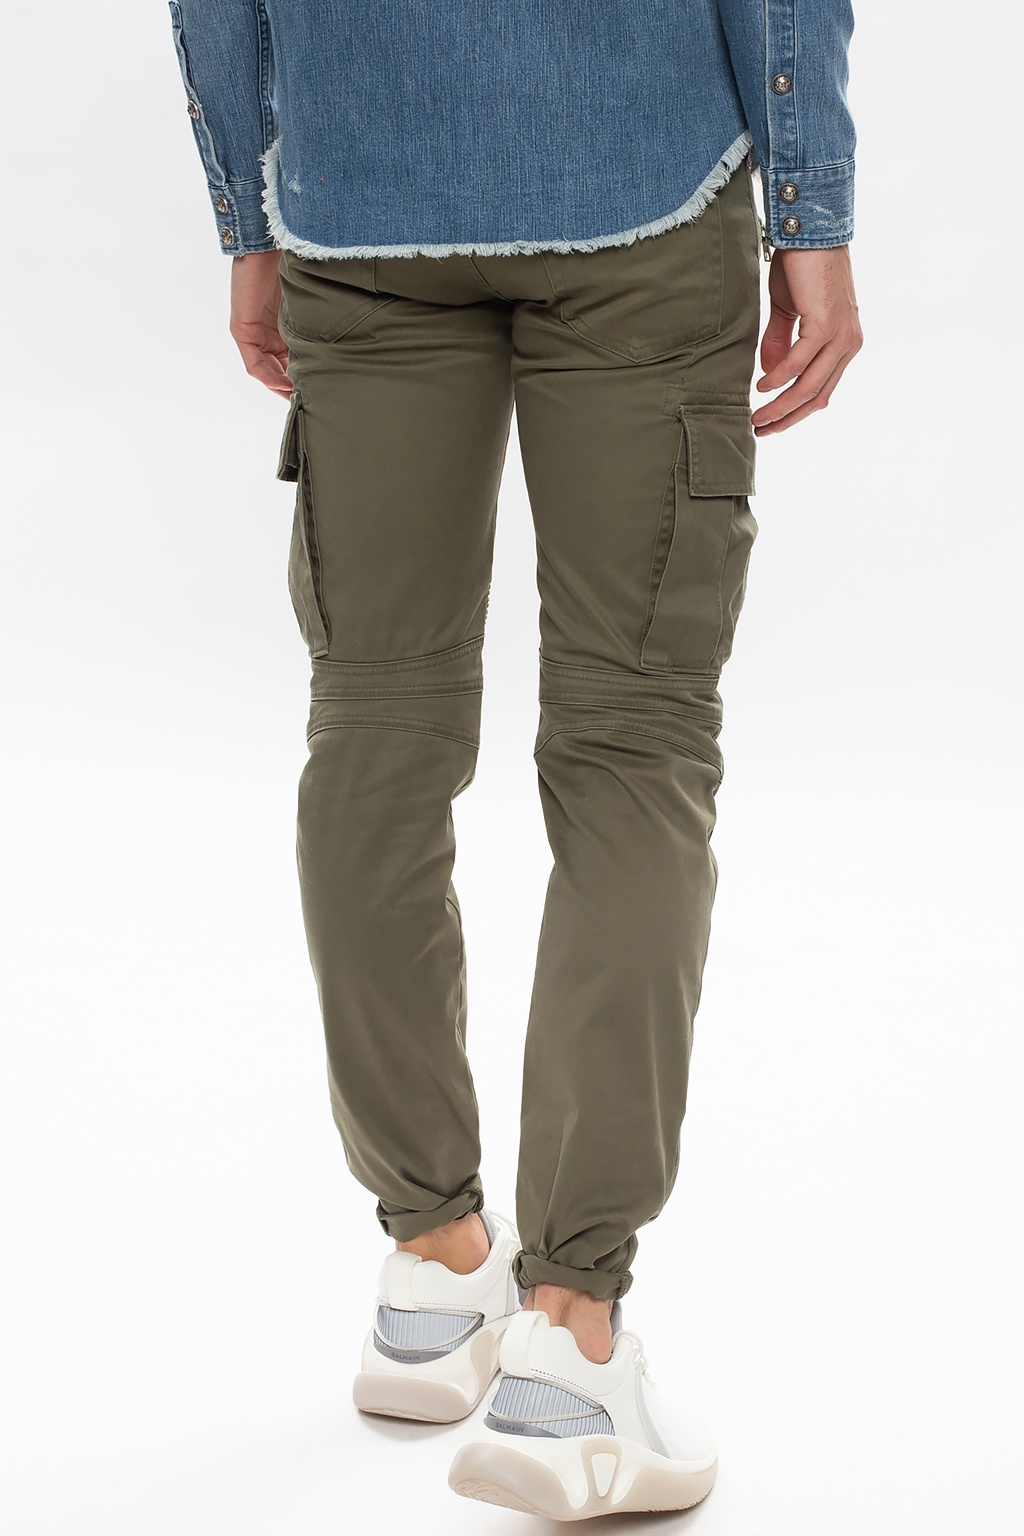 Balmain Trousers with pockets